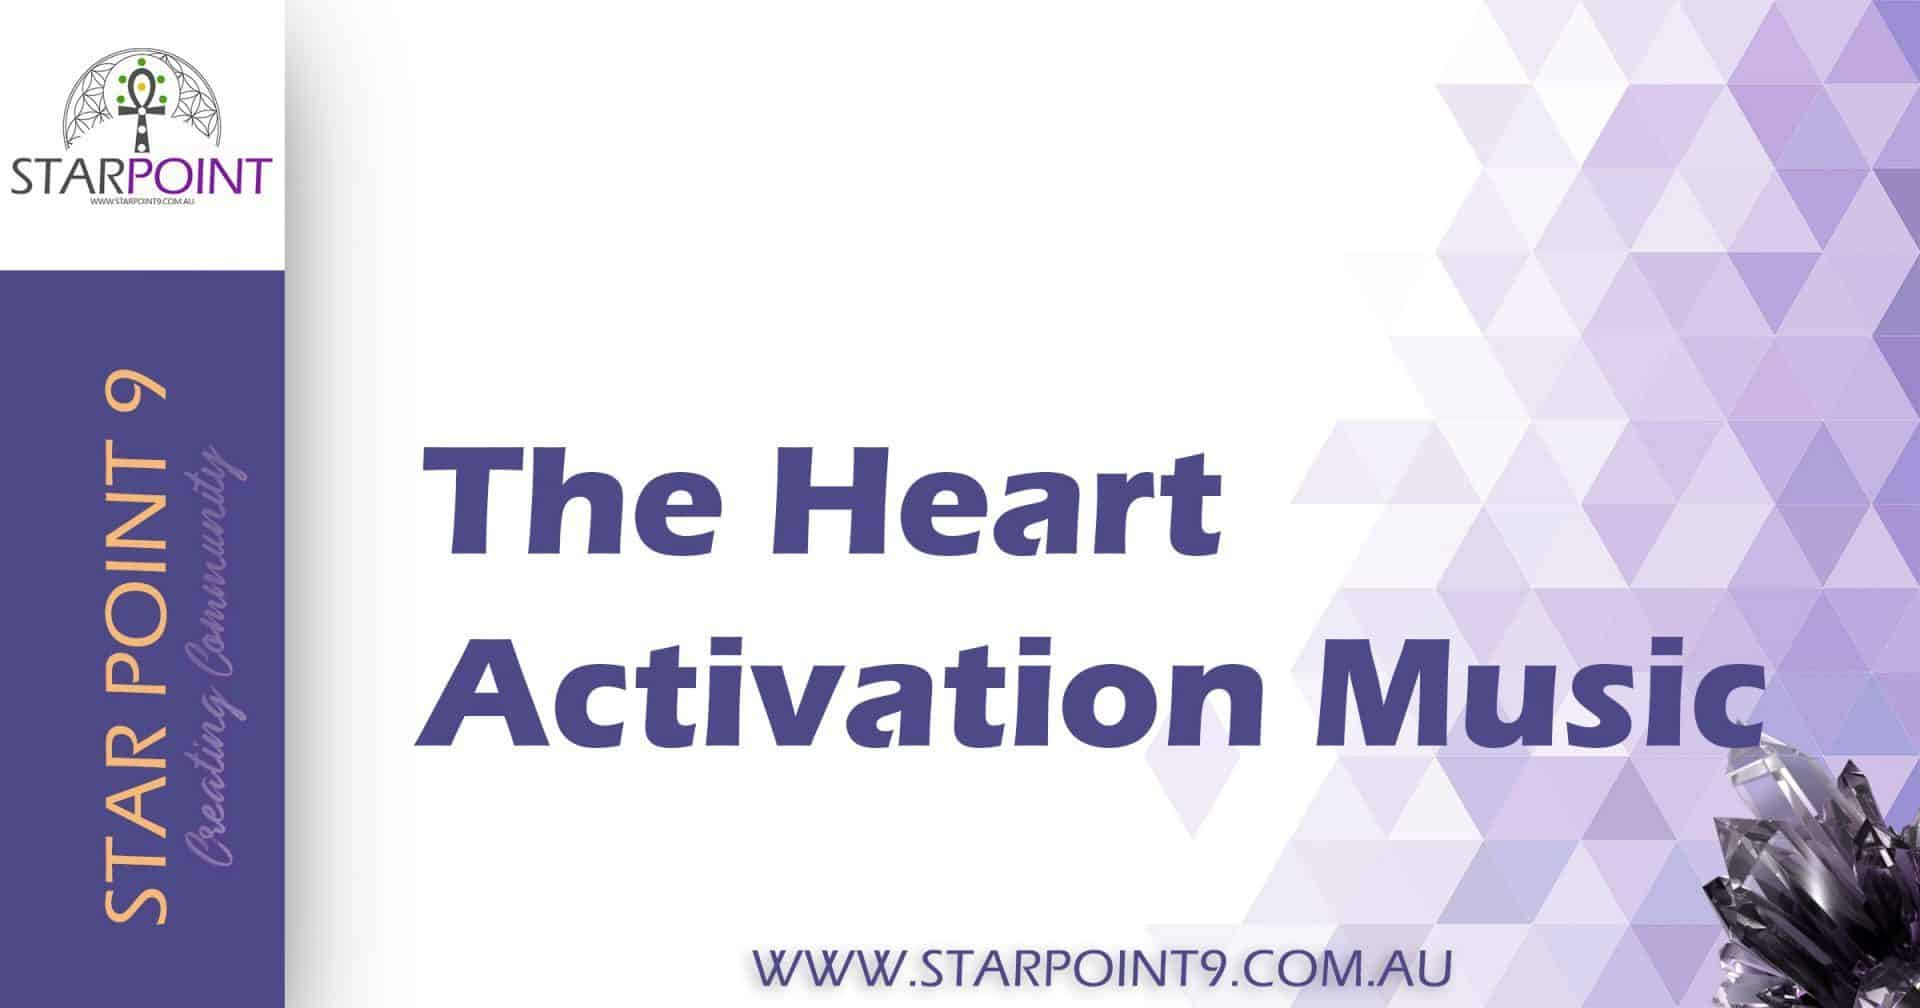 The Heart Activation Music by Steven North